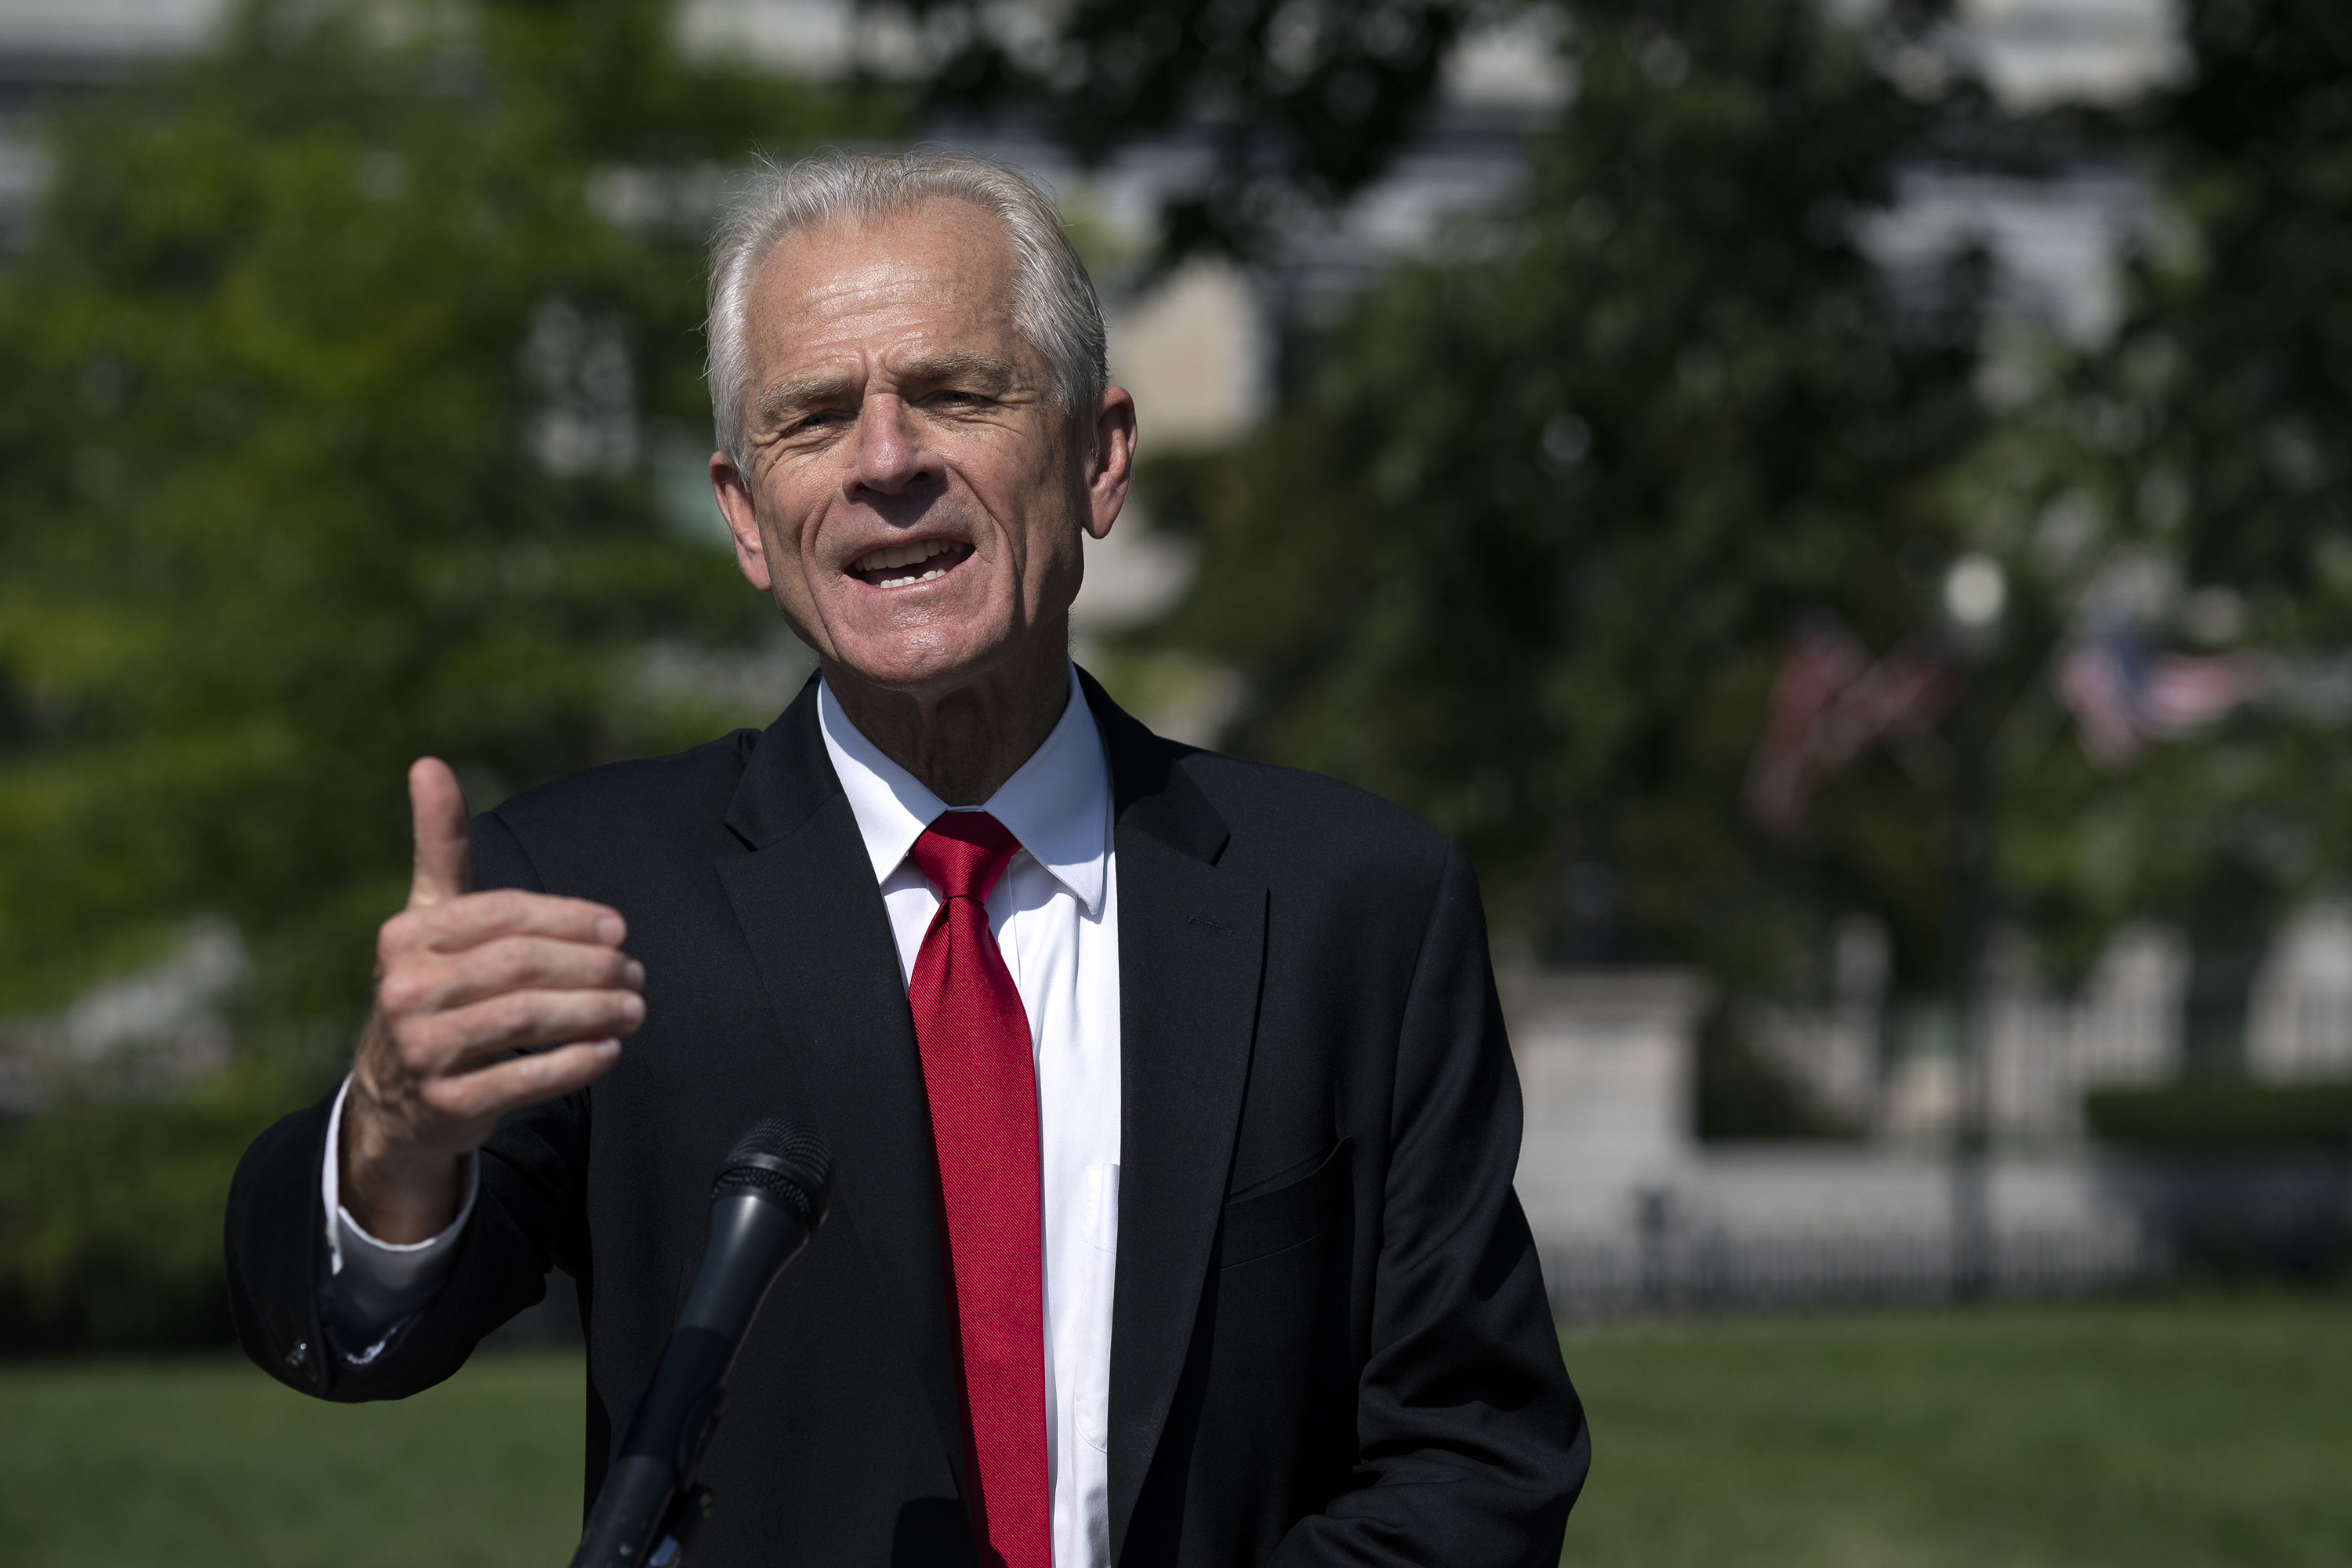 Peter Navarro, director of the National Trade Council, speaks to members of the media outside the White House in Washington, D.C., on August 28.